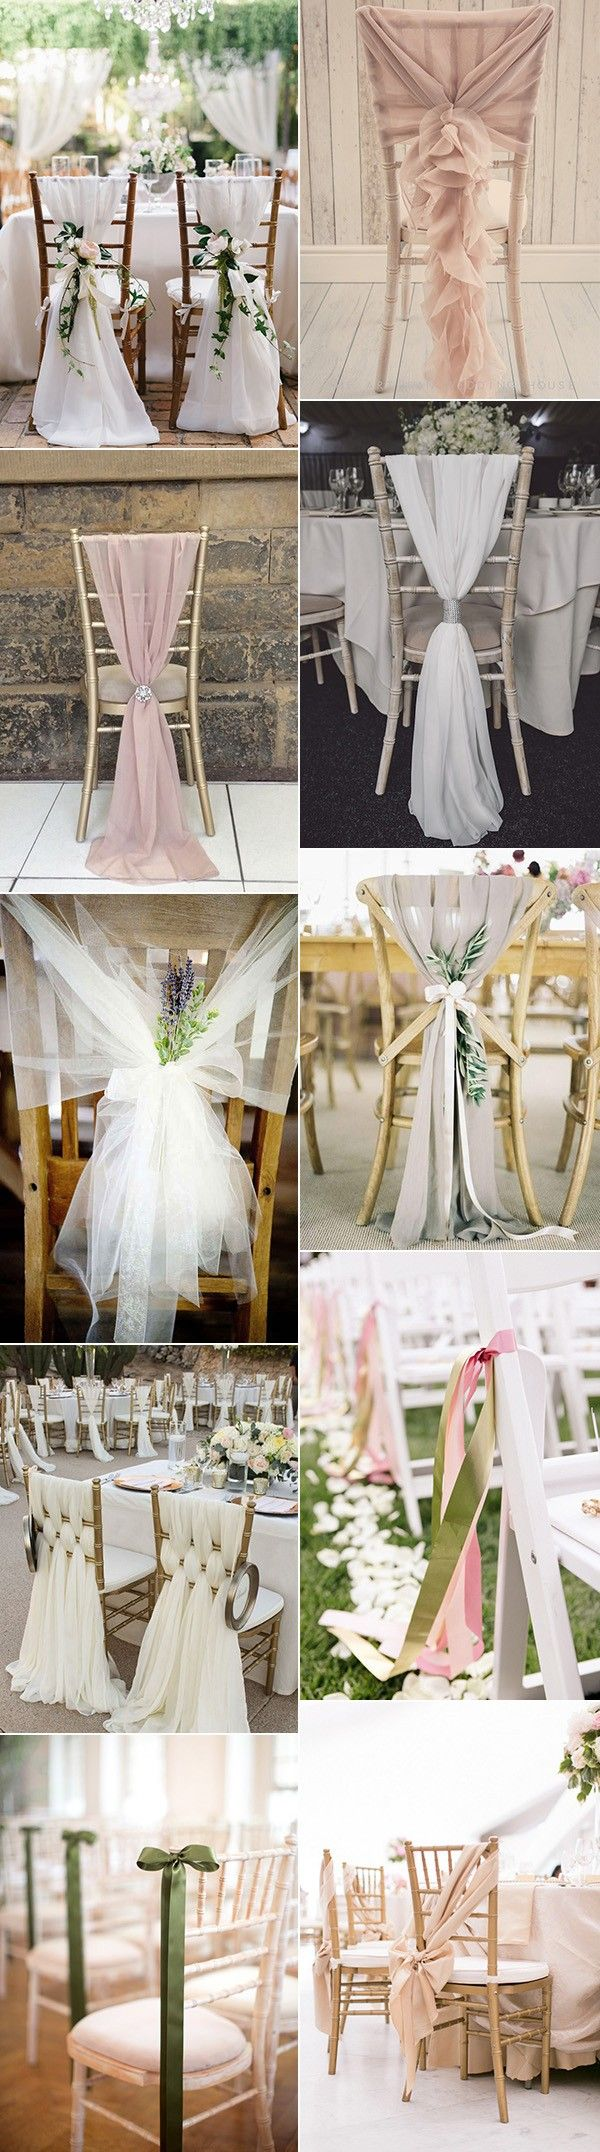 Wedding chair decoration ideas with fabric and ribbons wedding wedding chair decoration ideas with fabric and ribbons junglespirit Image collections